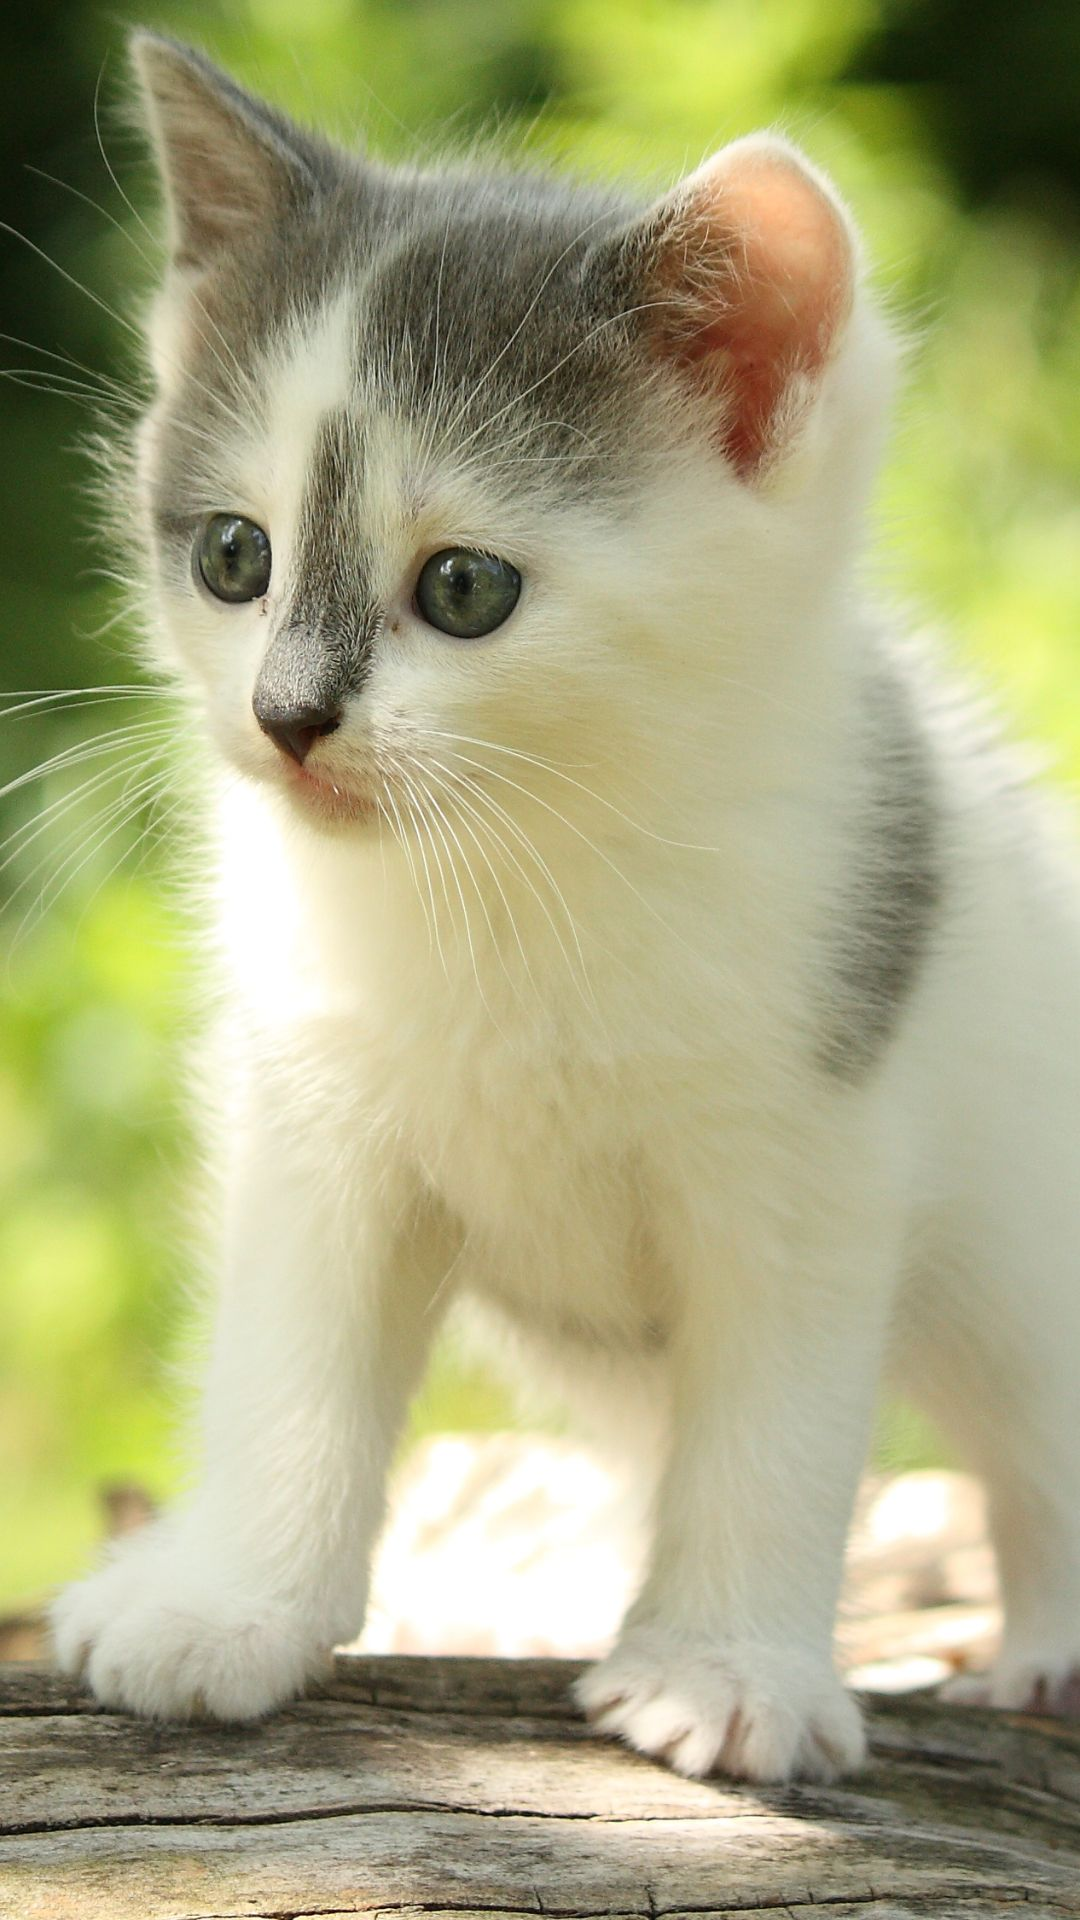 Animal Cat 1080x1920 Mobile Wallpaper Cats Baby Cats Kittens Cutest